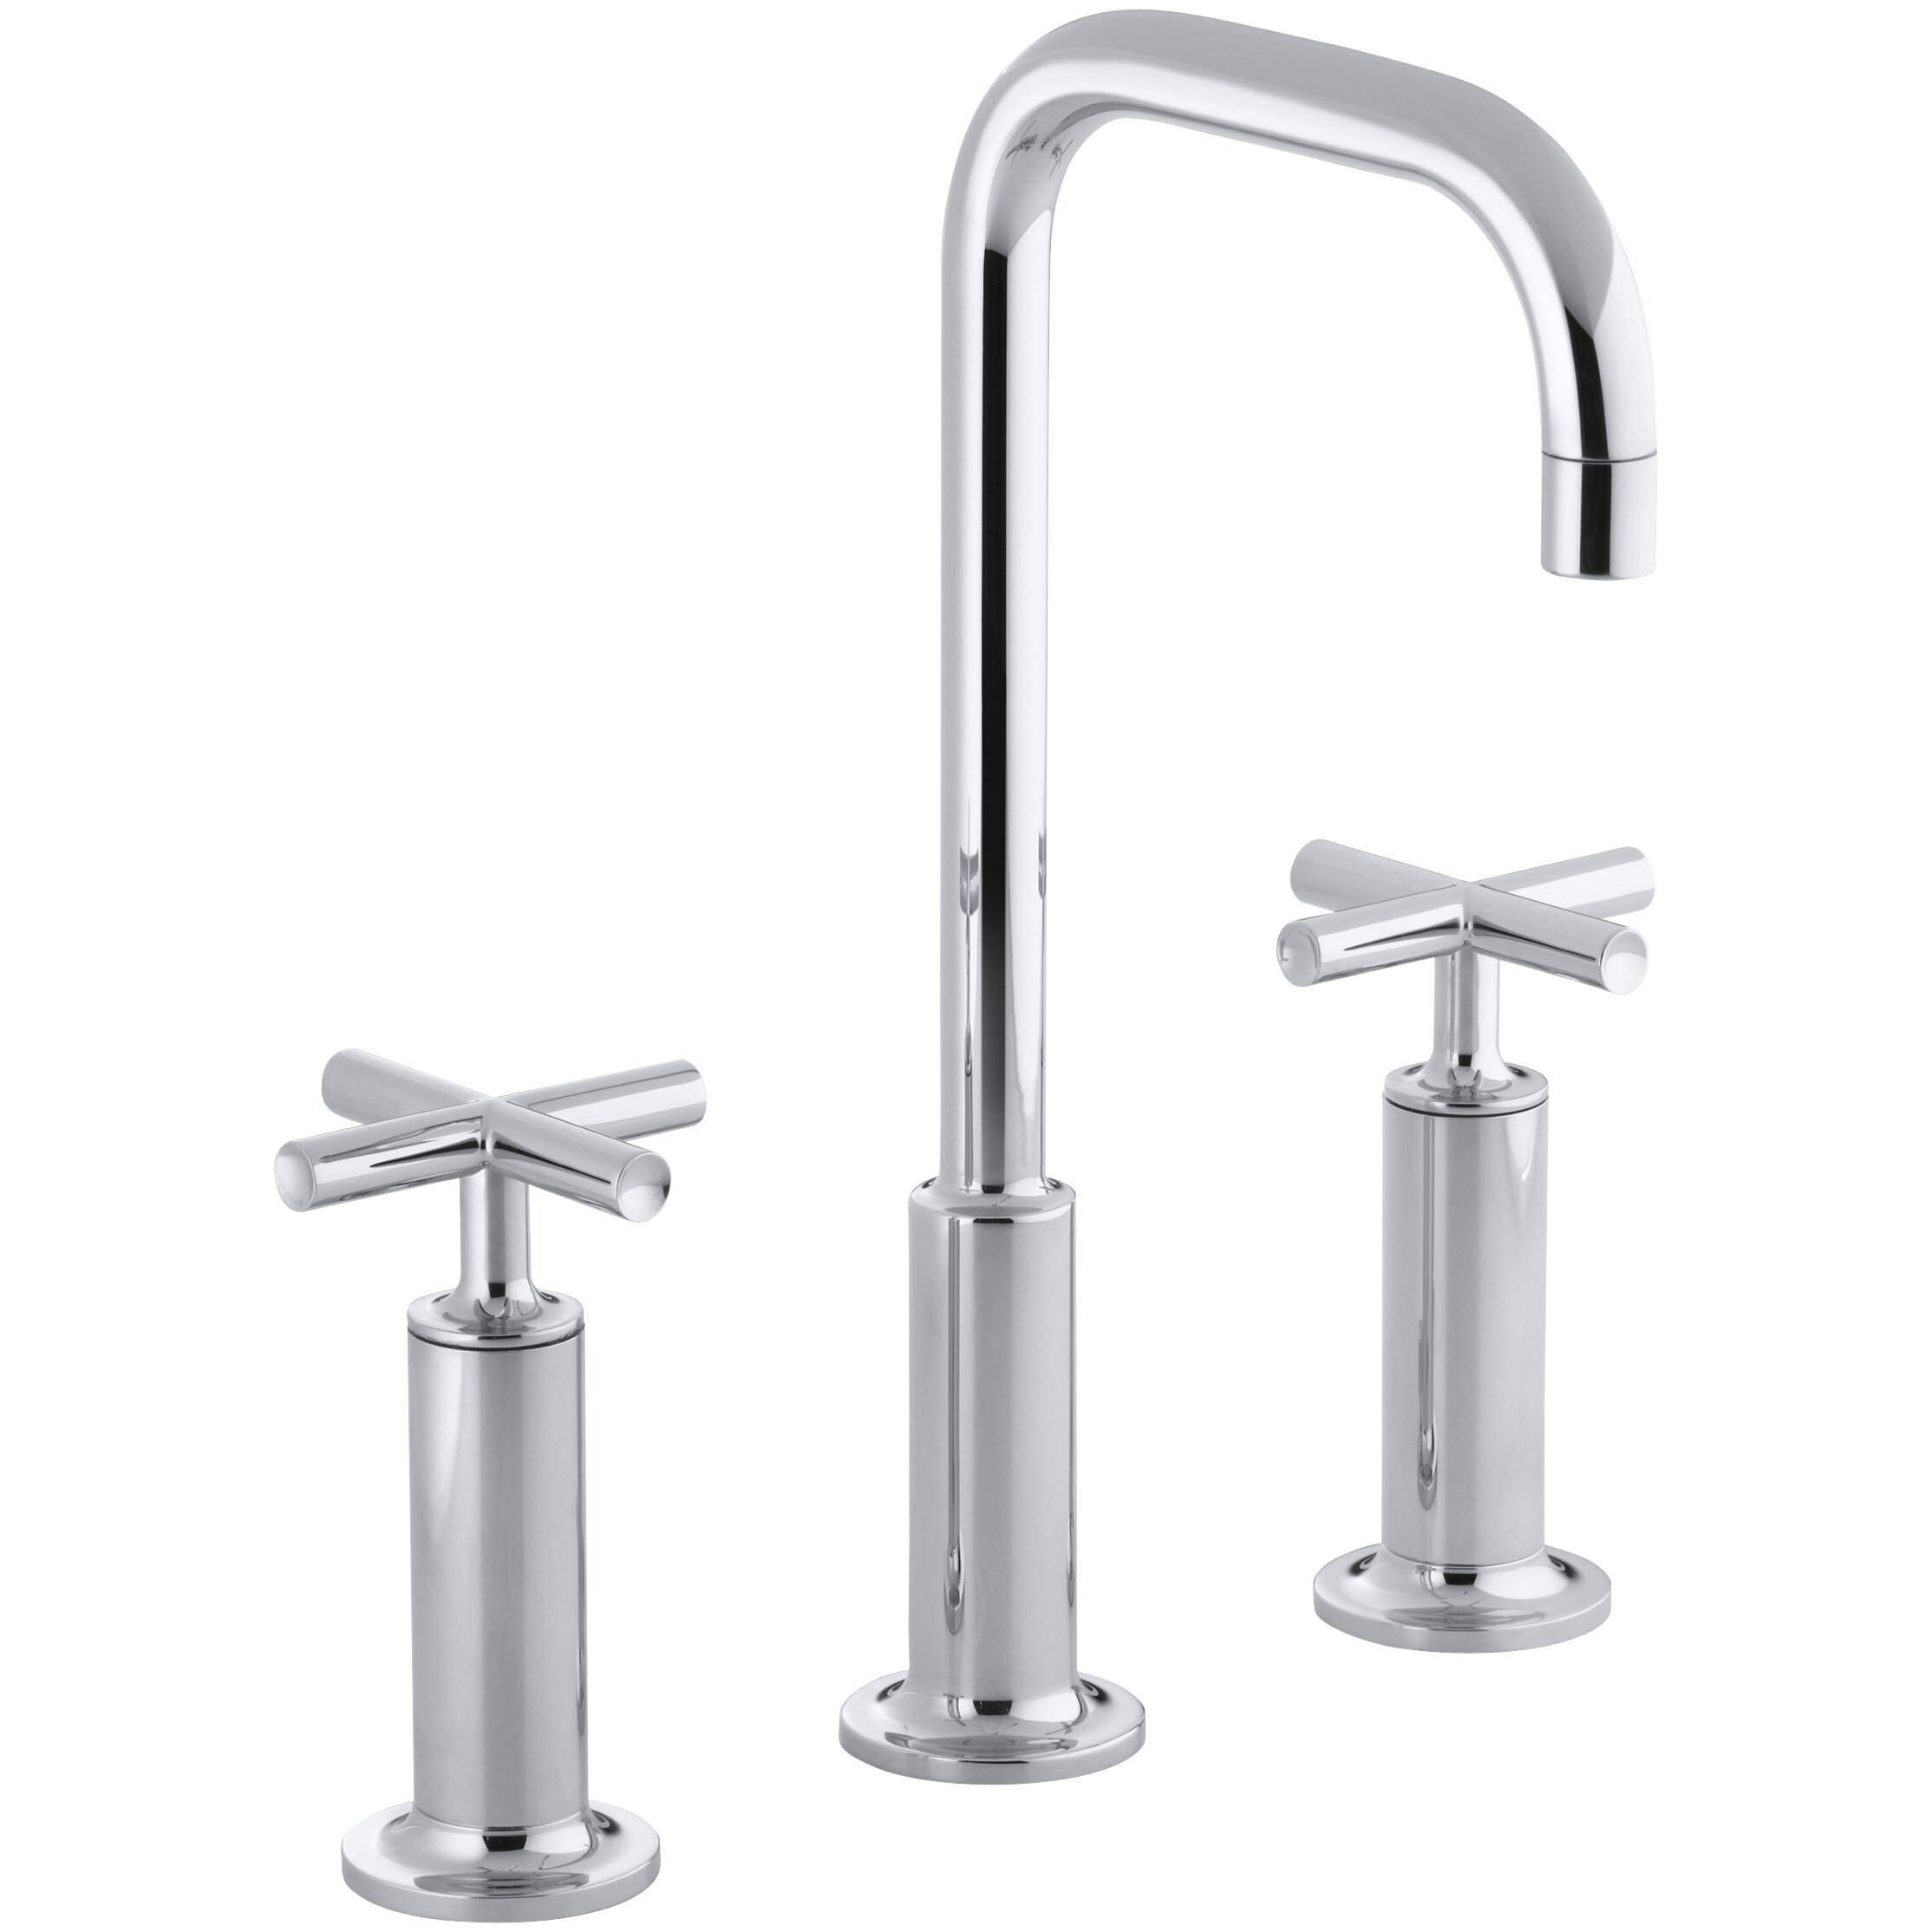 Kohler Purist Widespread Bathroom Sink Faucet With High Cross Handles And High Gooseneck Spout